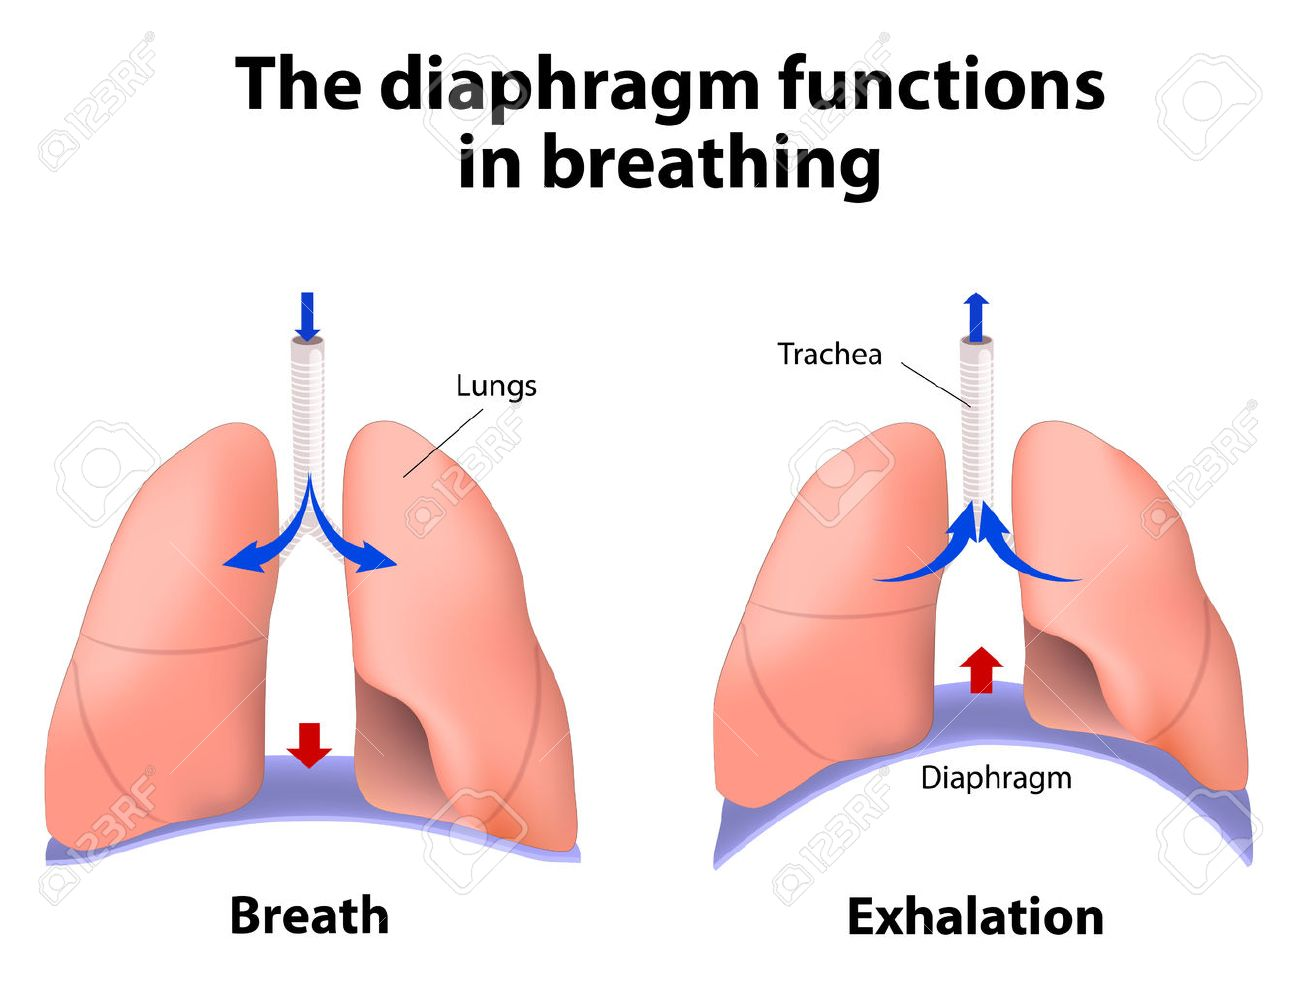 diaphragm functions in breathing. breath and exhalation. enlarging, Human Body